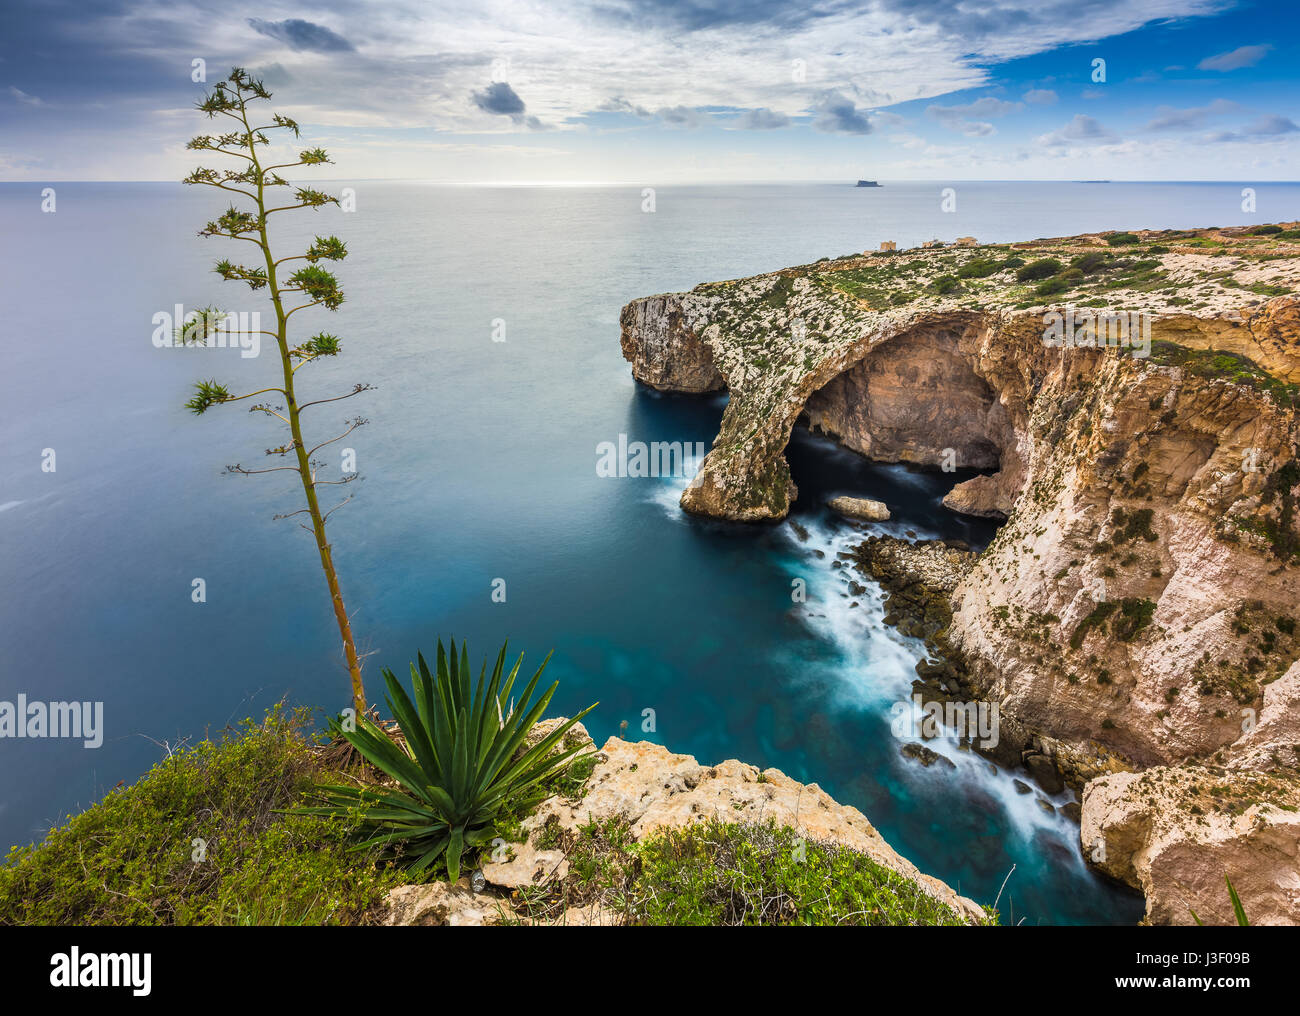 Malta - The famous arch of Blue Grotto cliffs with green leaves and tree - Stock Image